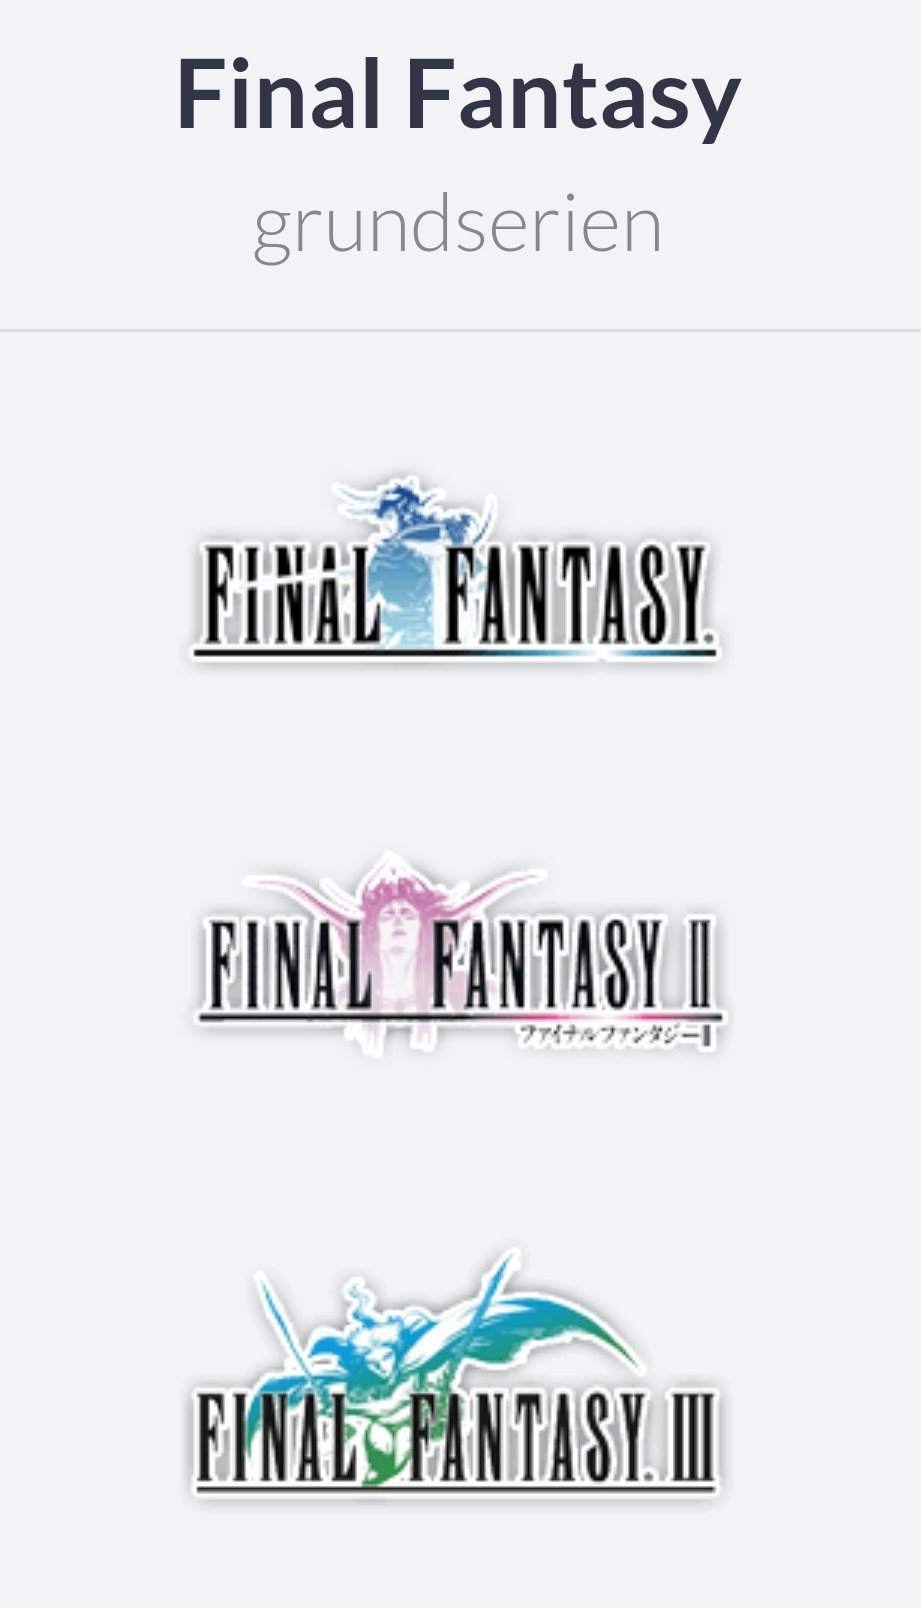 Final Fantasy logoer på rad